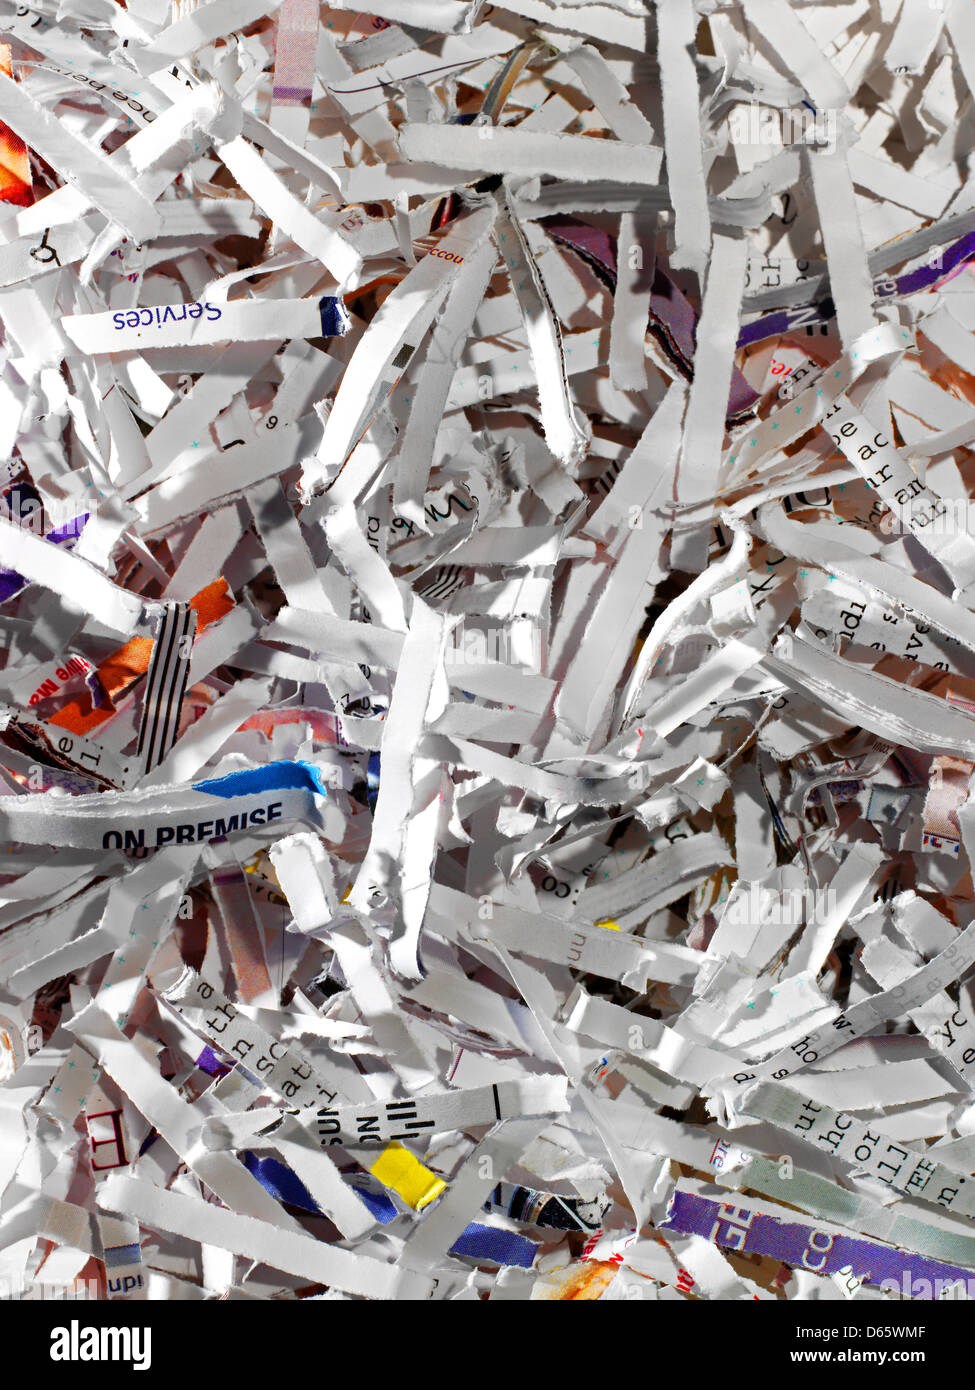 Close up of shredded paper shot straight down with high detail. - Stock Image